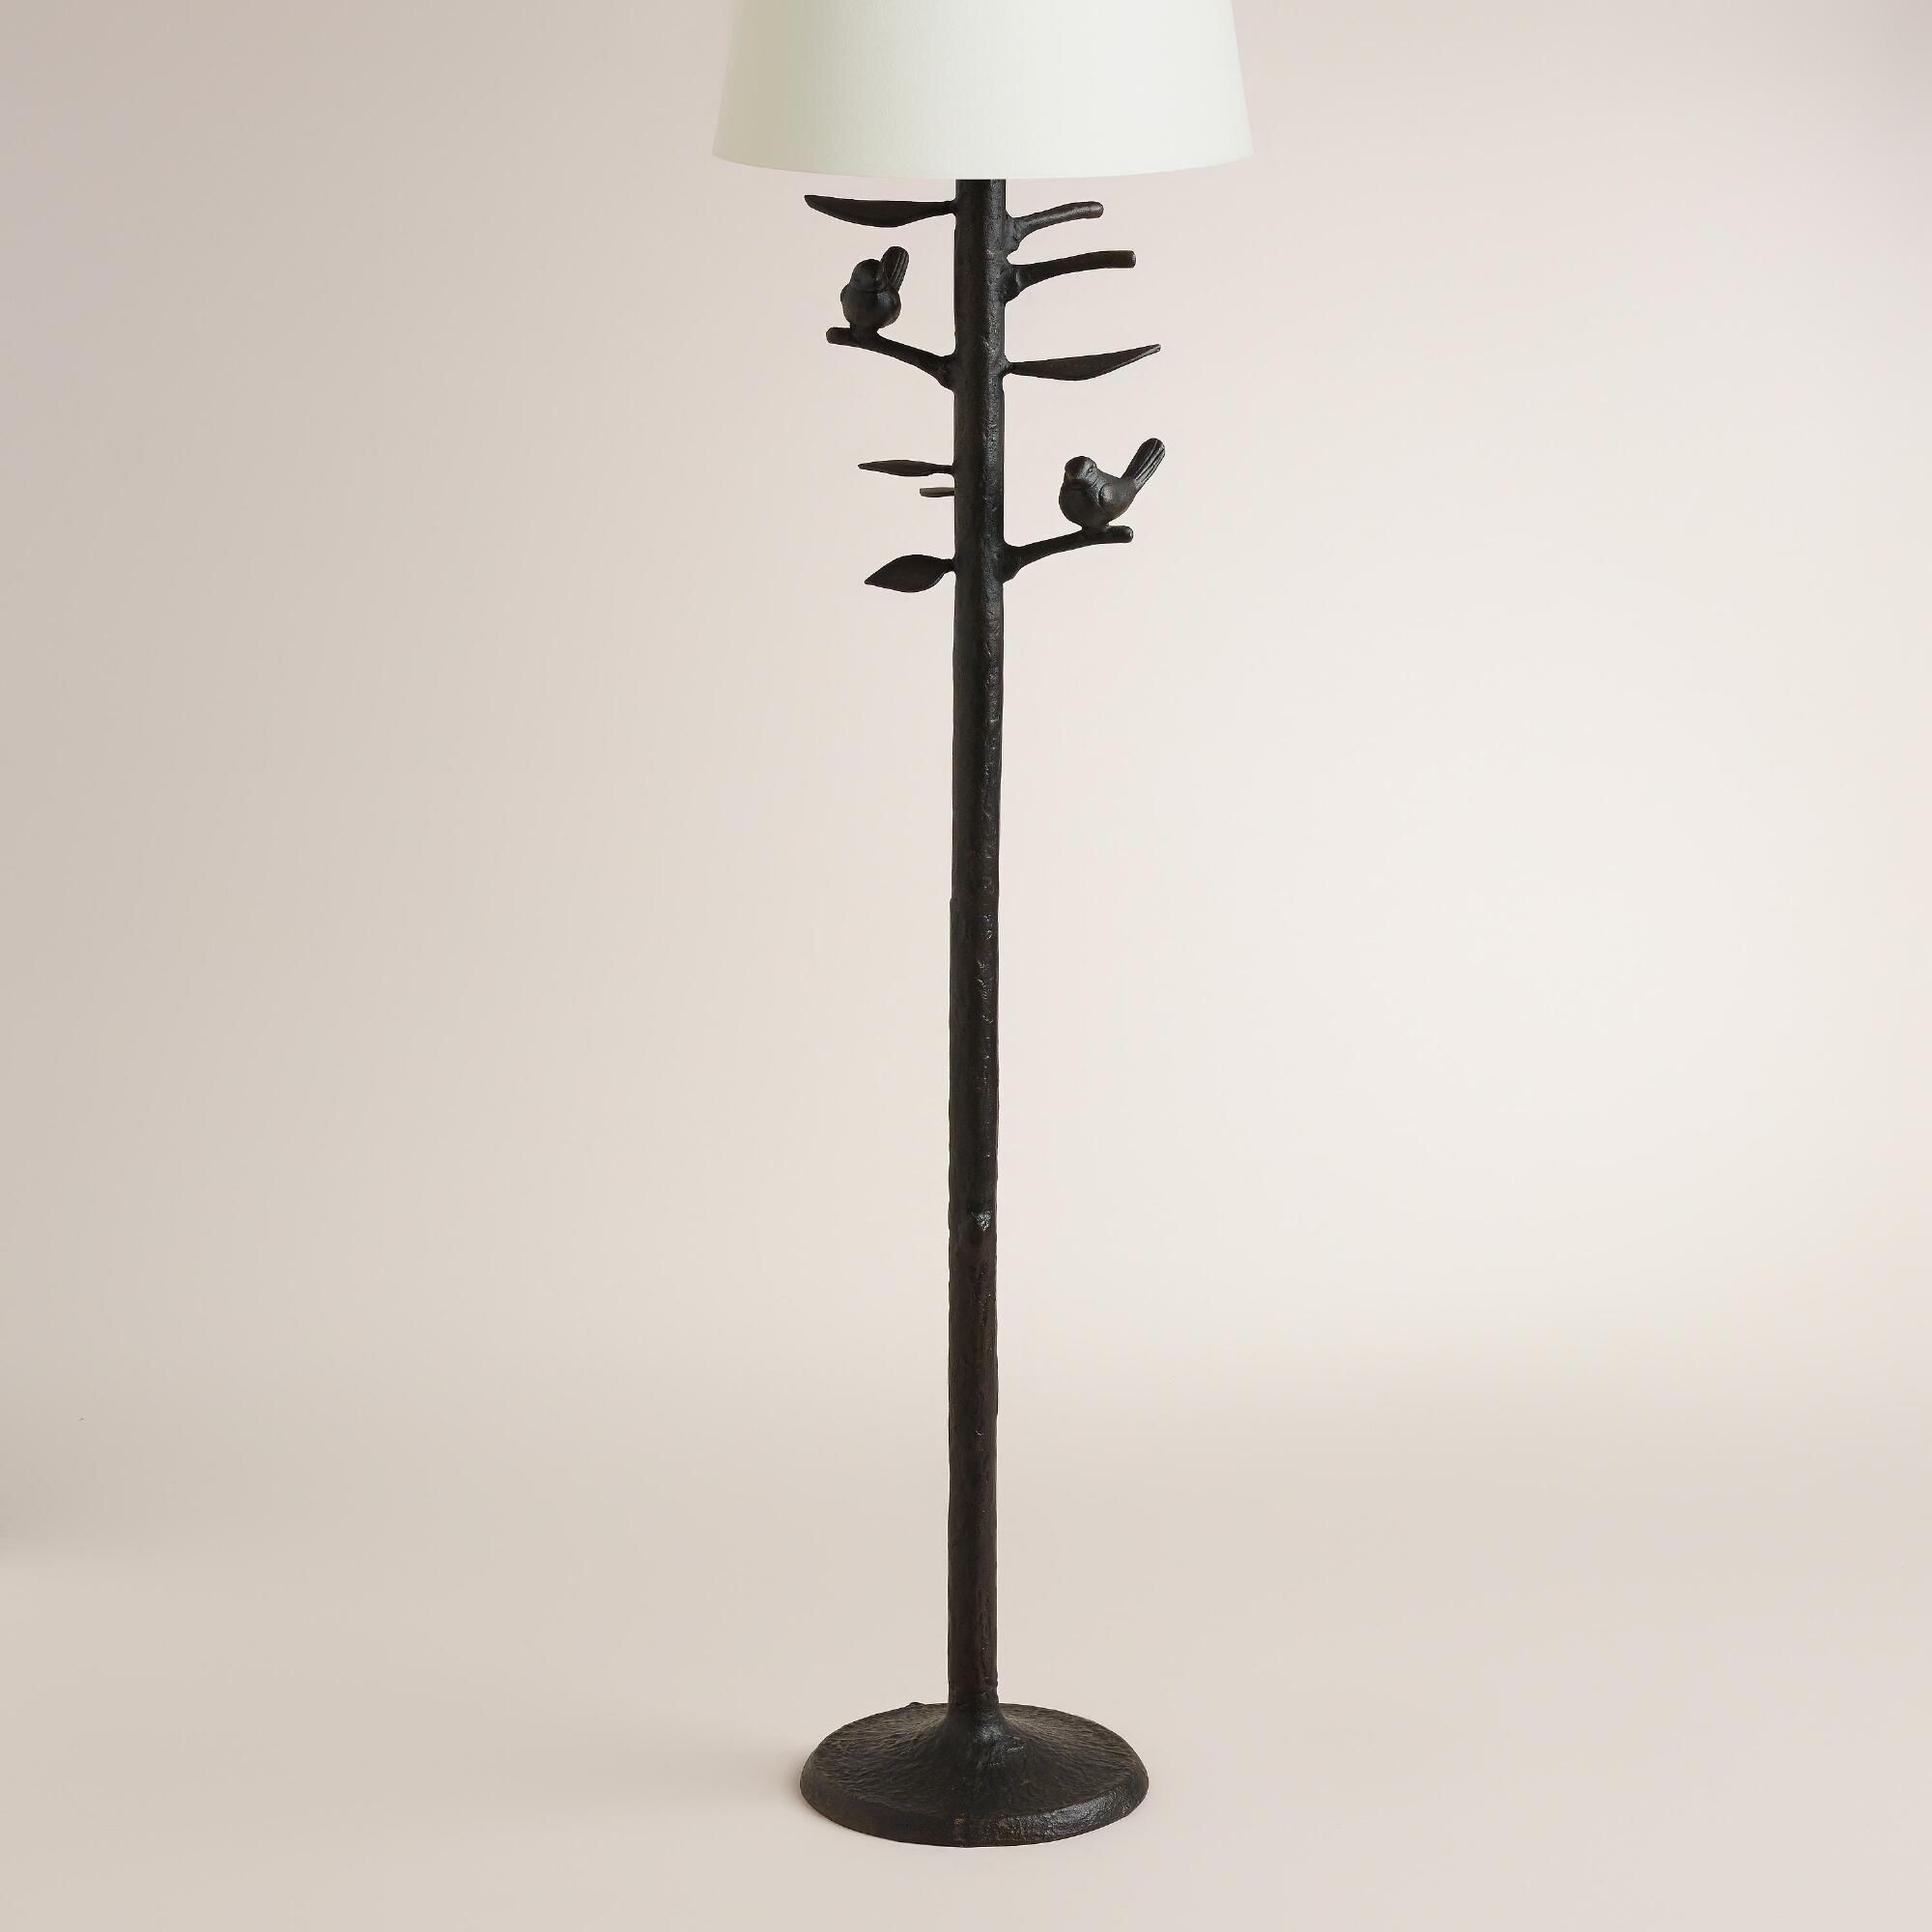 Floor Lamp Base Awesome Woodlands Floor Lamp Base  Lamp Bases Floors And The Outdoors Design Inspiration